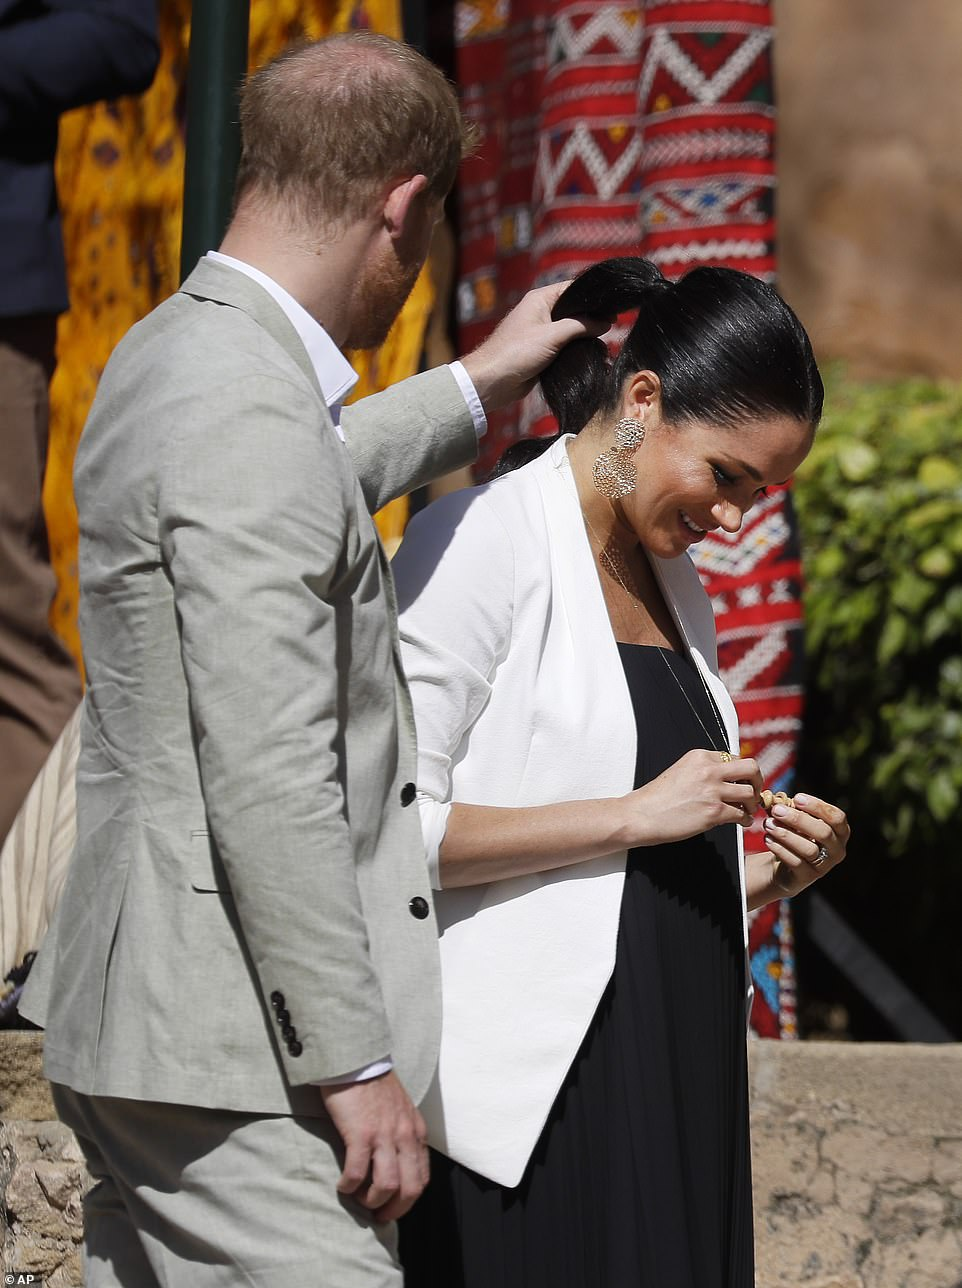 Ever the attentive husband, Prince Harry could be seen assisting Meghan with her ponytail as the local man placed it around her neck